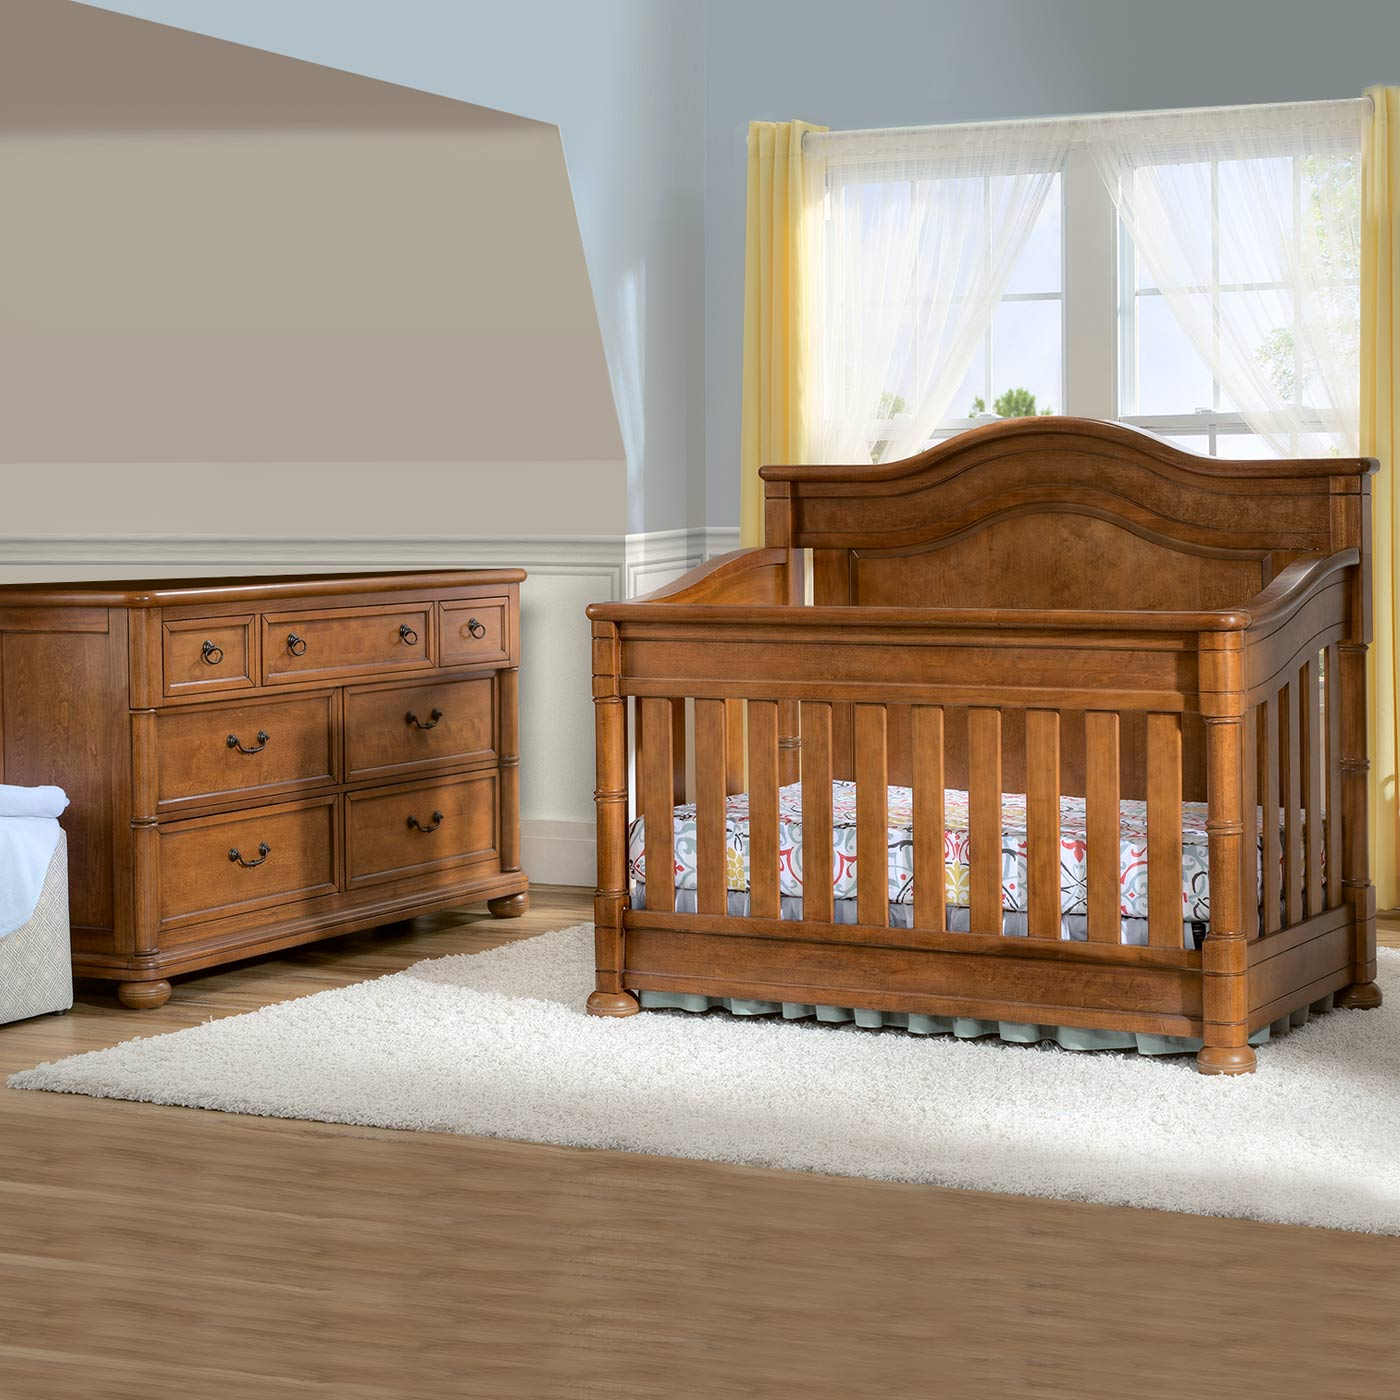 Simmons Hanover Park 2 Piece Nursery Set   Convertible Crib And Double  Dresser In Chestnut FREE SHIPPING